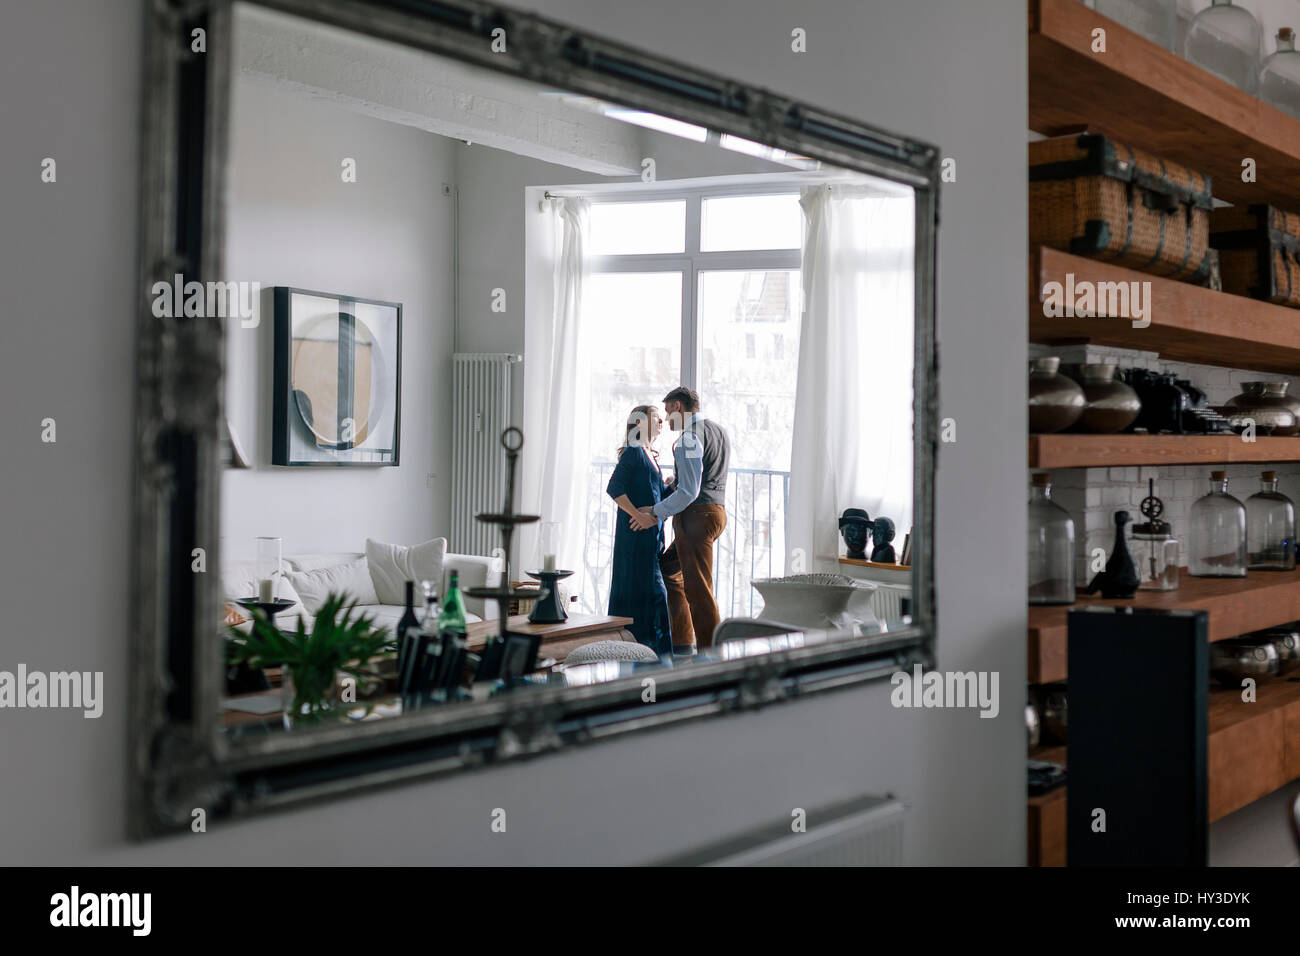 Germany, Couple reflected in mirror - Stock Image